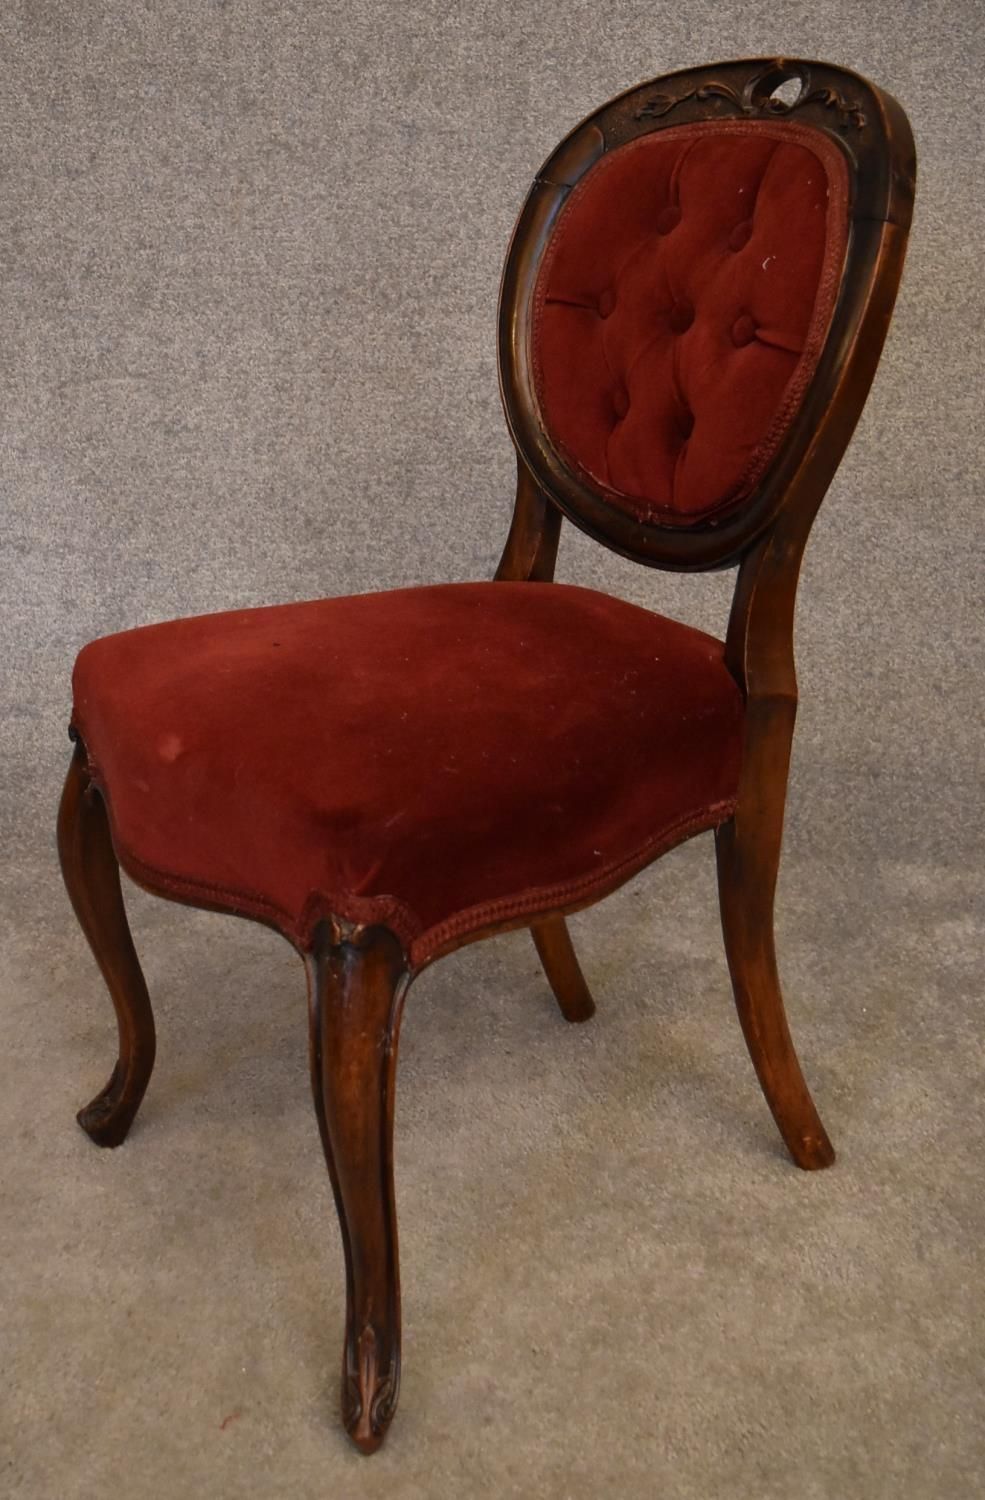 A Victorian mahogany framed balloon backed armchair on carved cabriole supports. H.85x43cm - Image 5 of 5